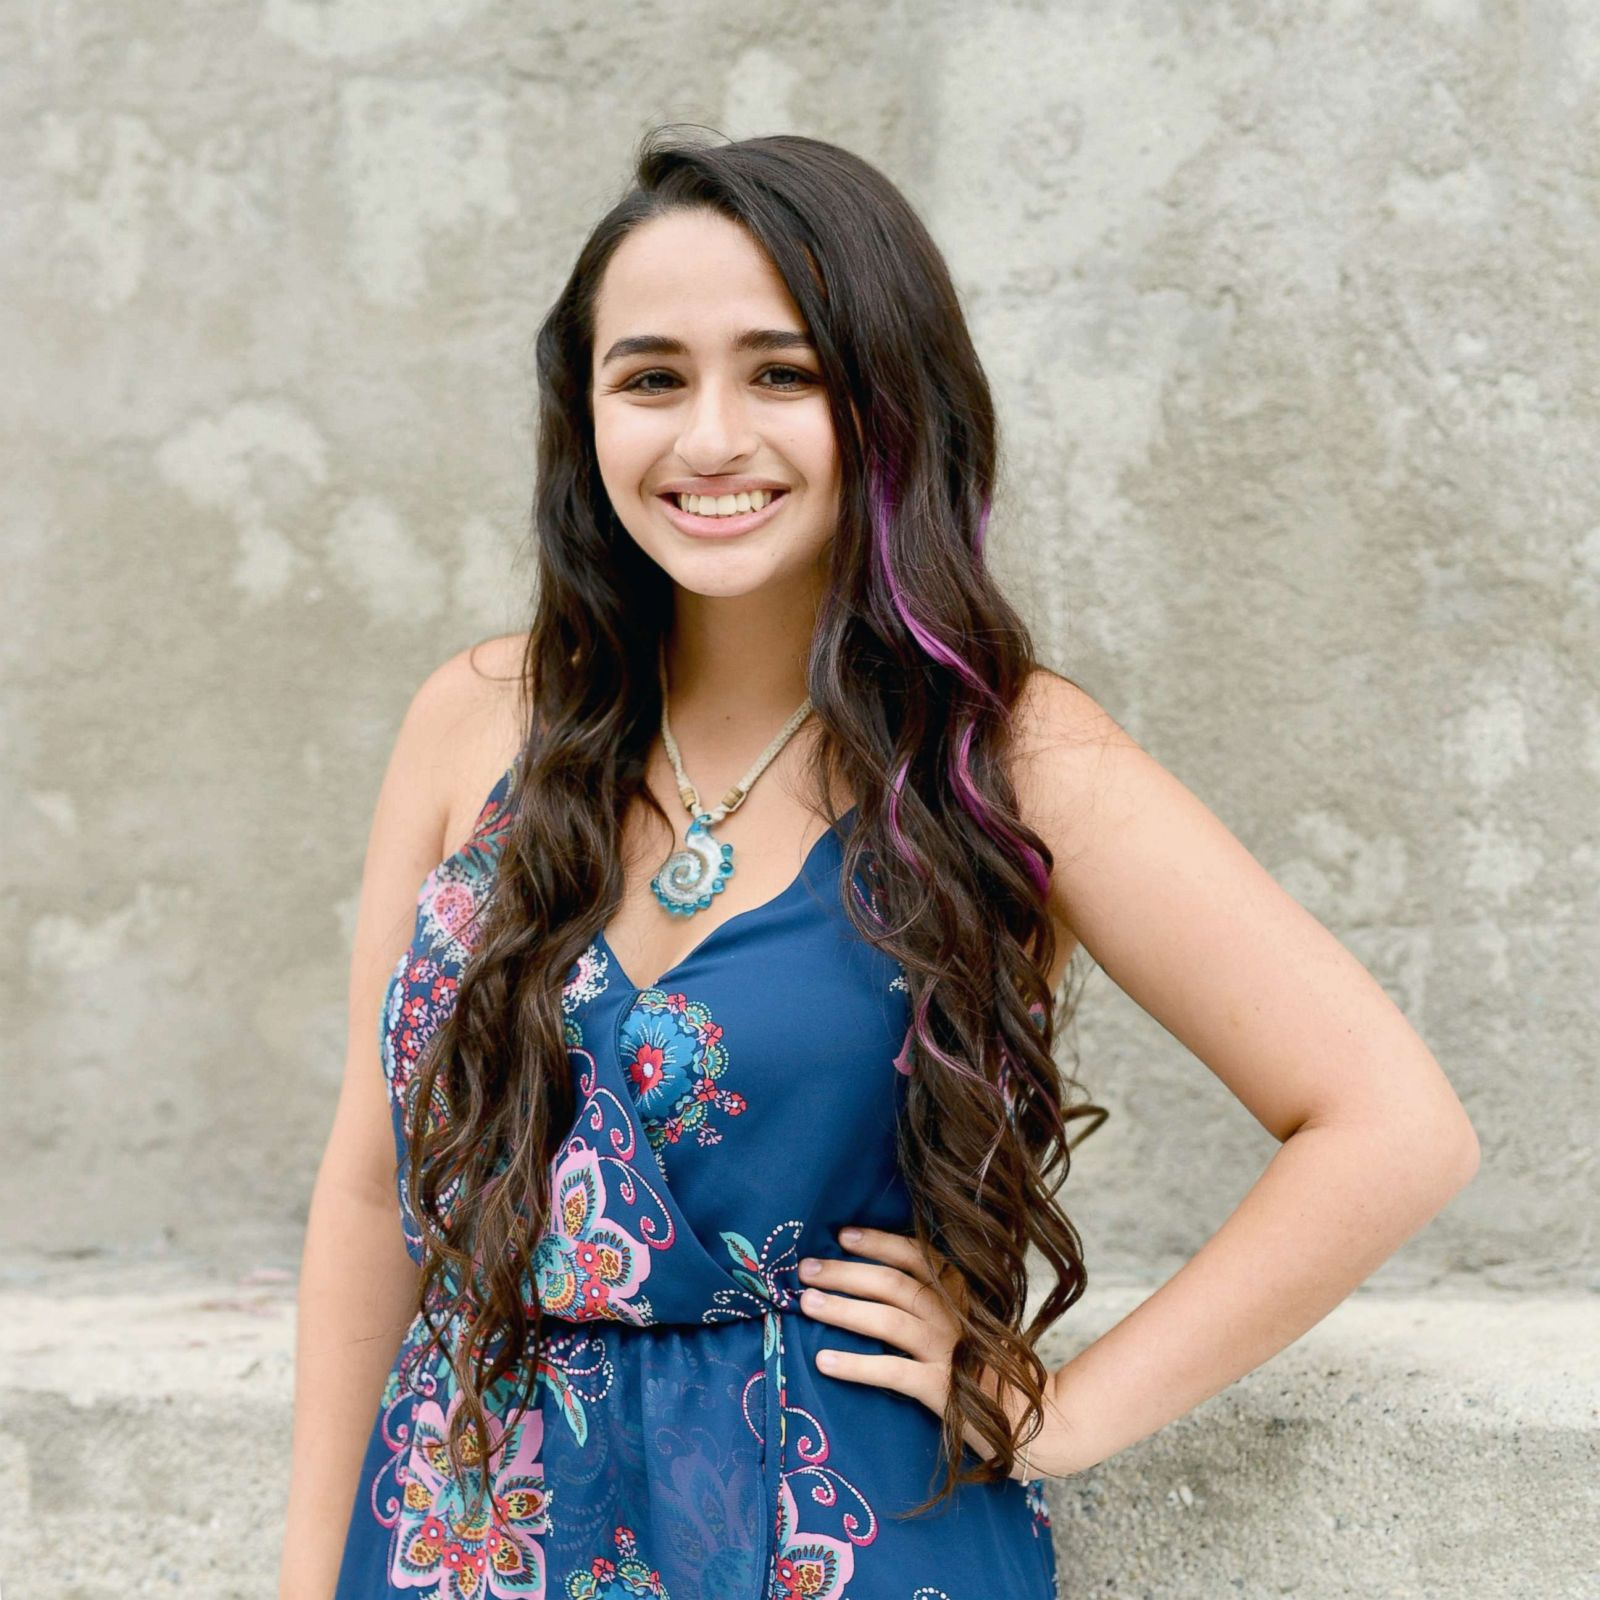 Transgender teen and 'I Am Jazz' star Jazz Jennings on